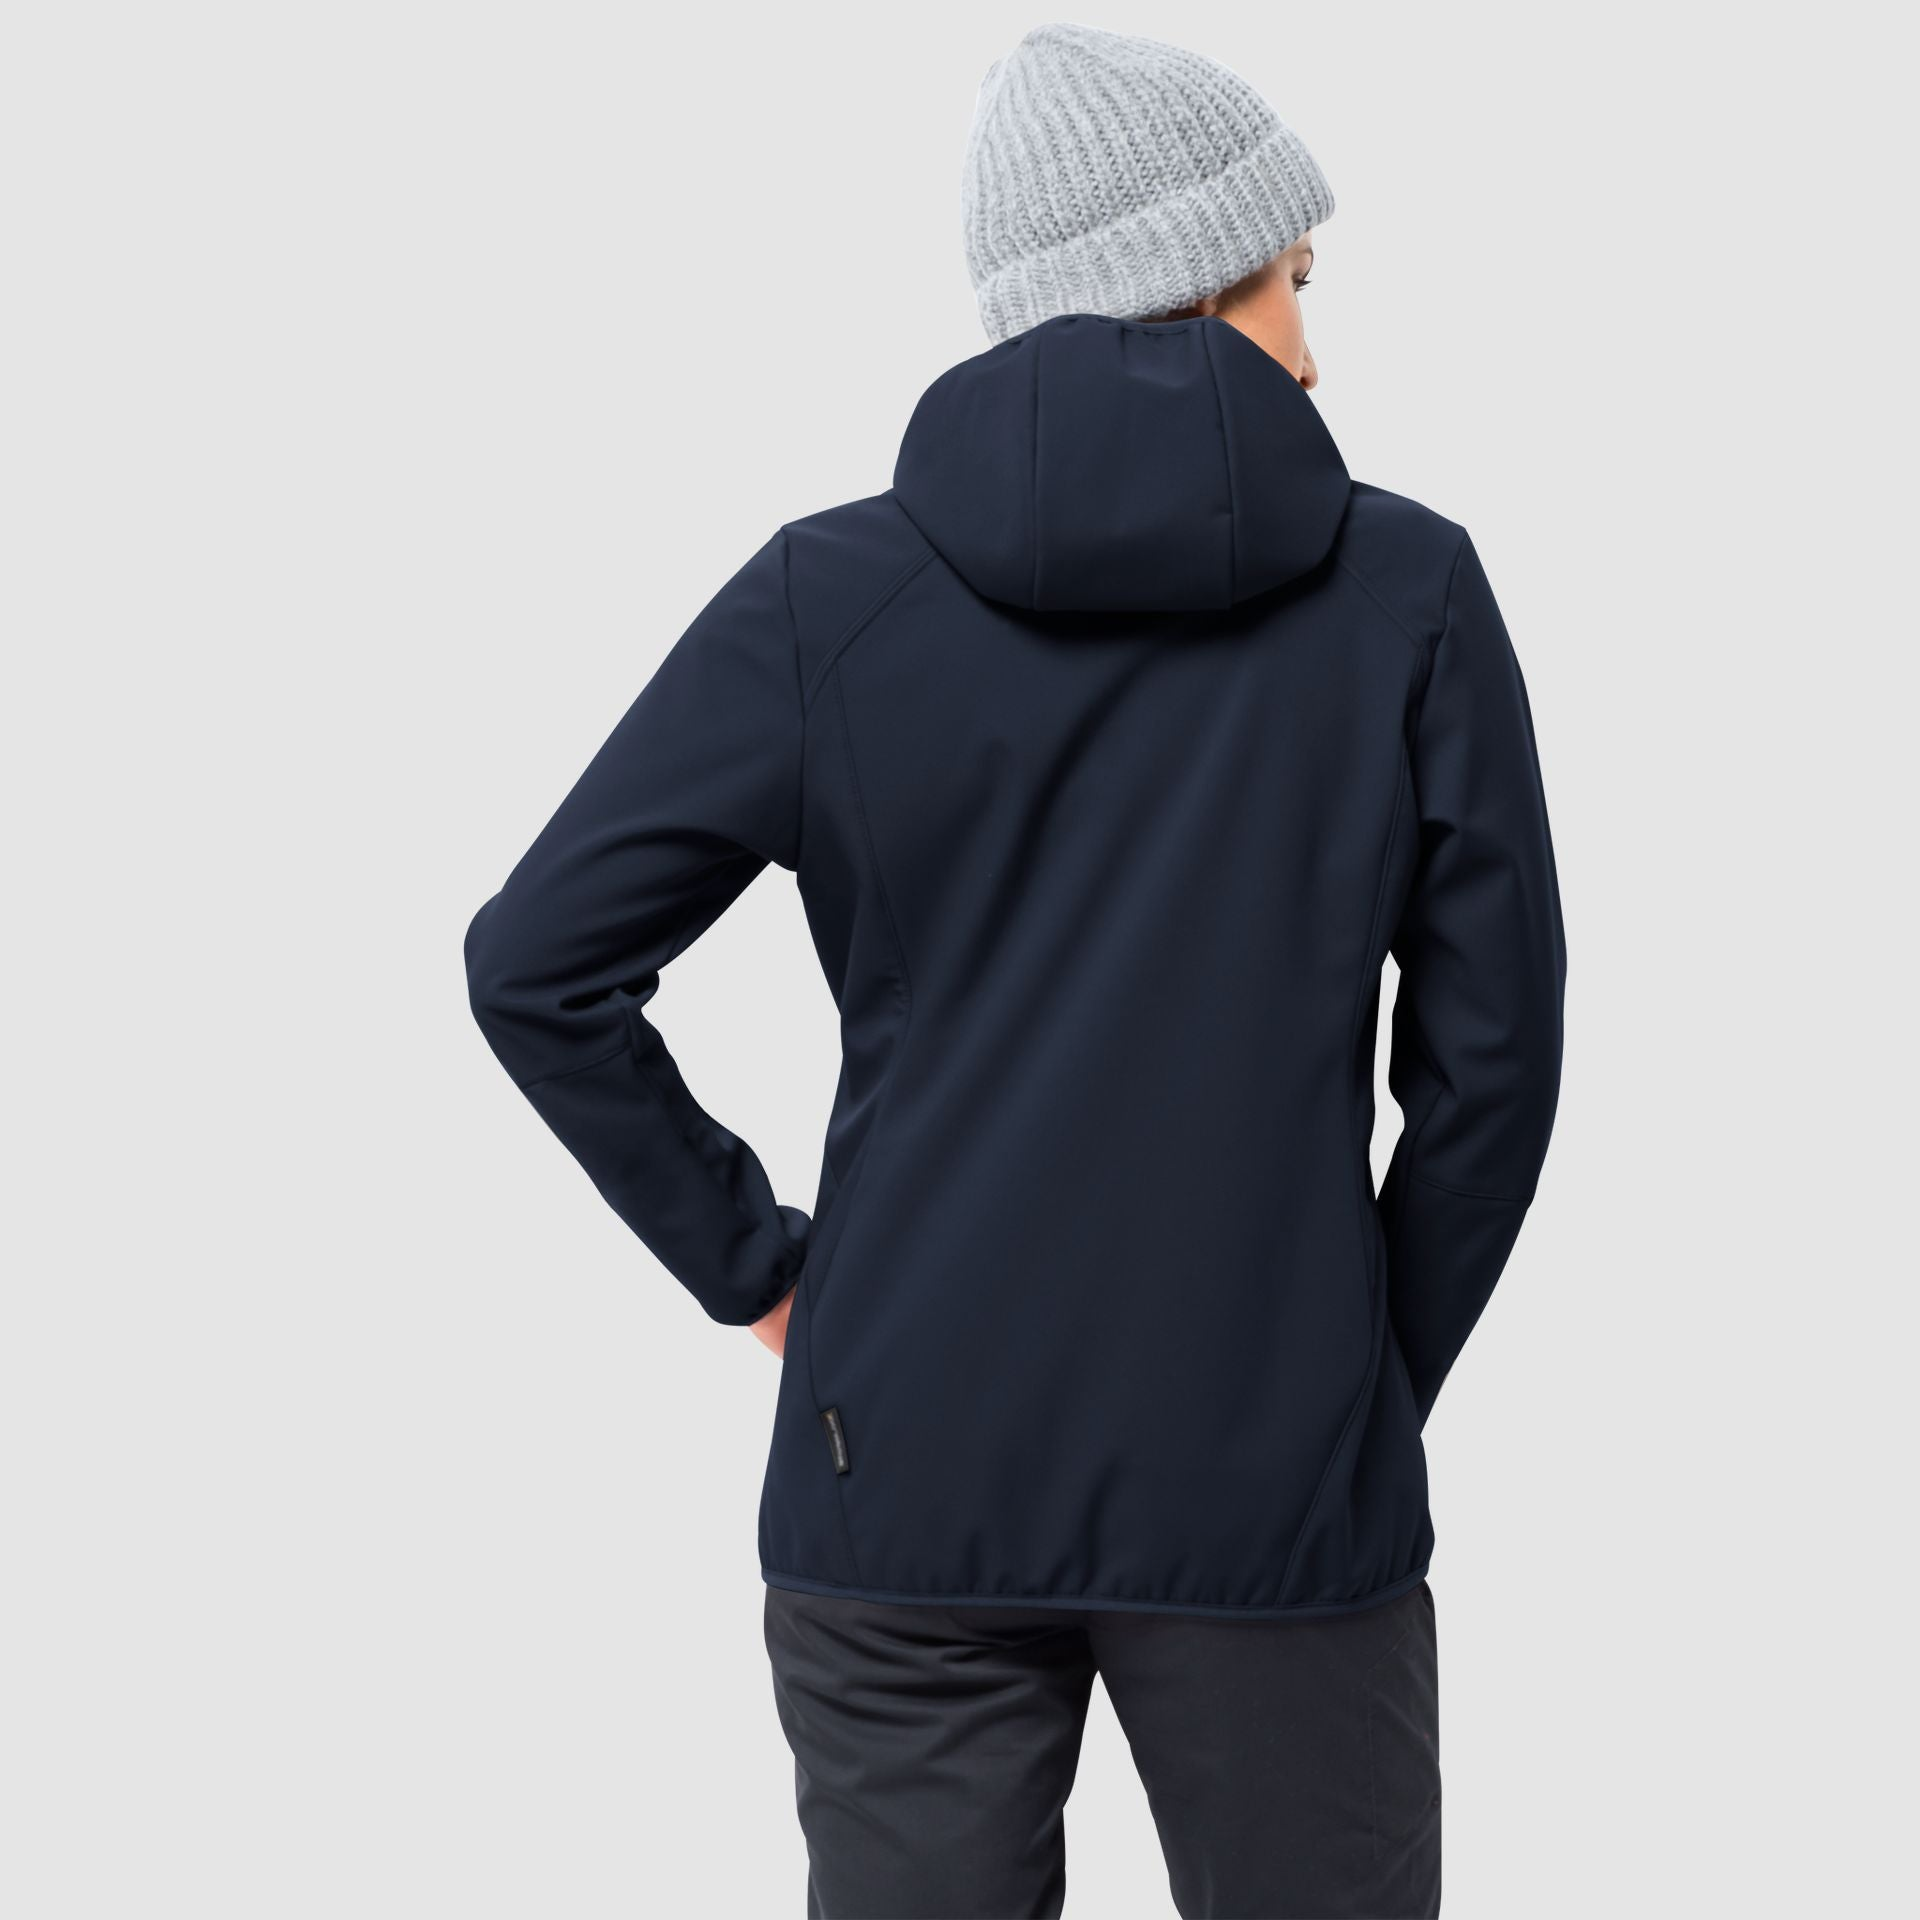 Jack Wolfskin Shop Winter Coat